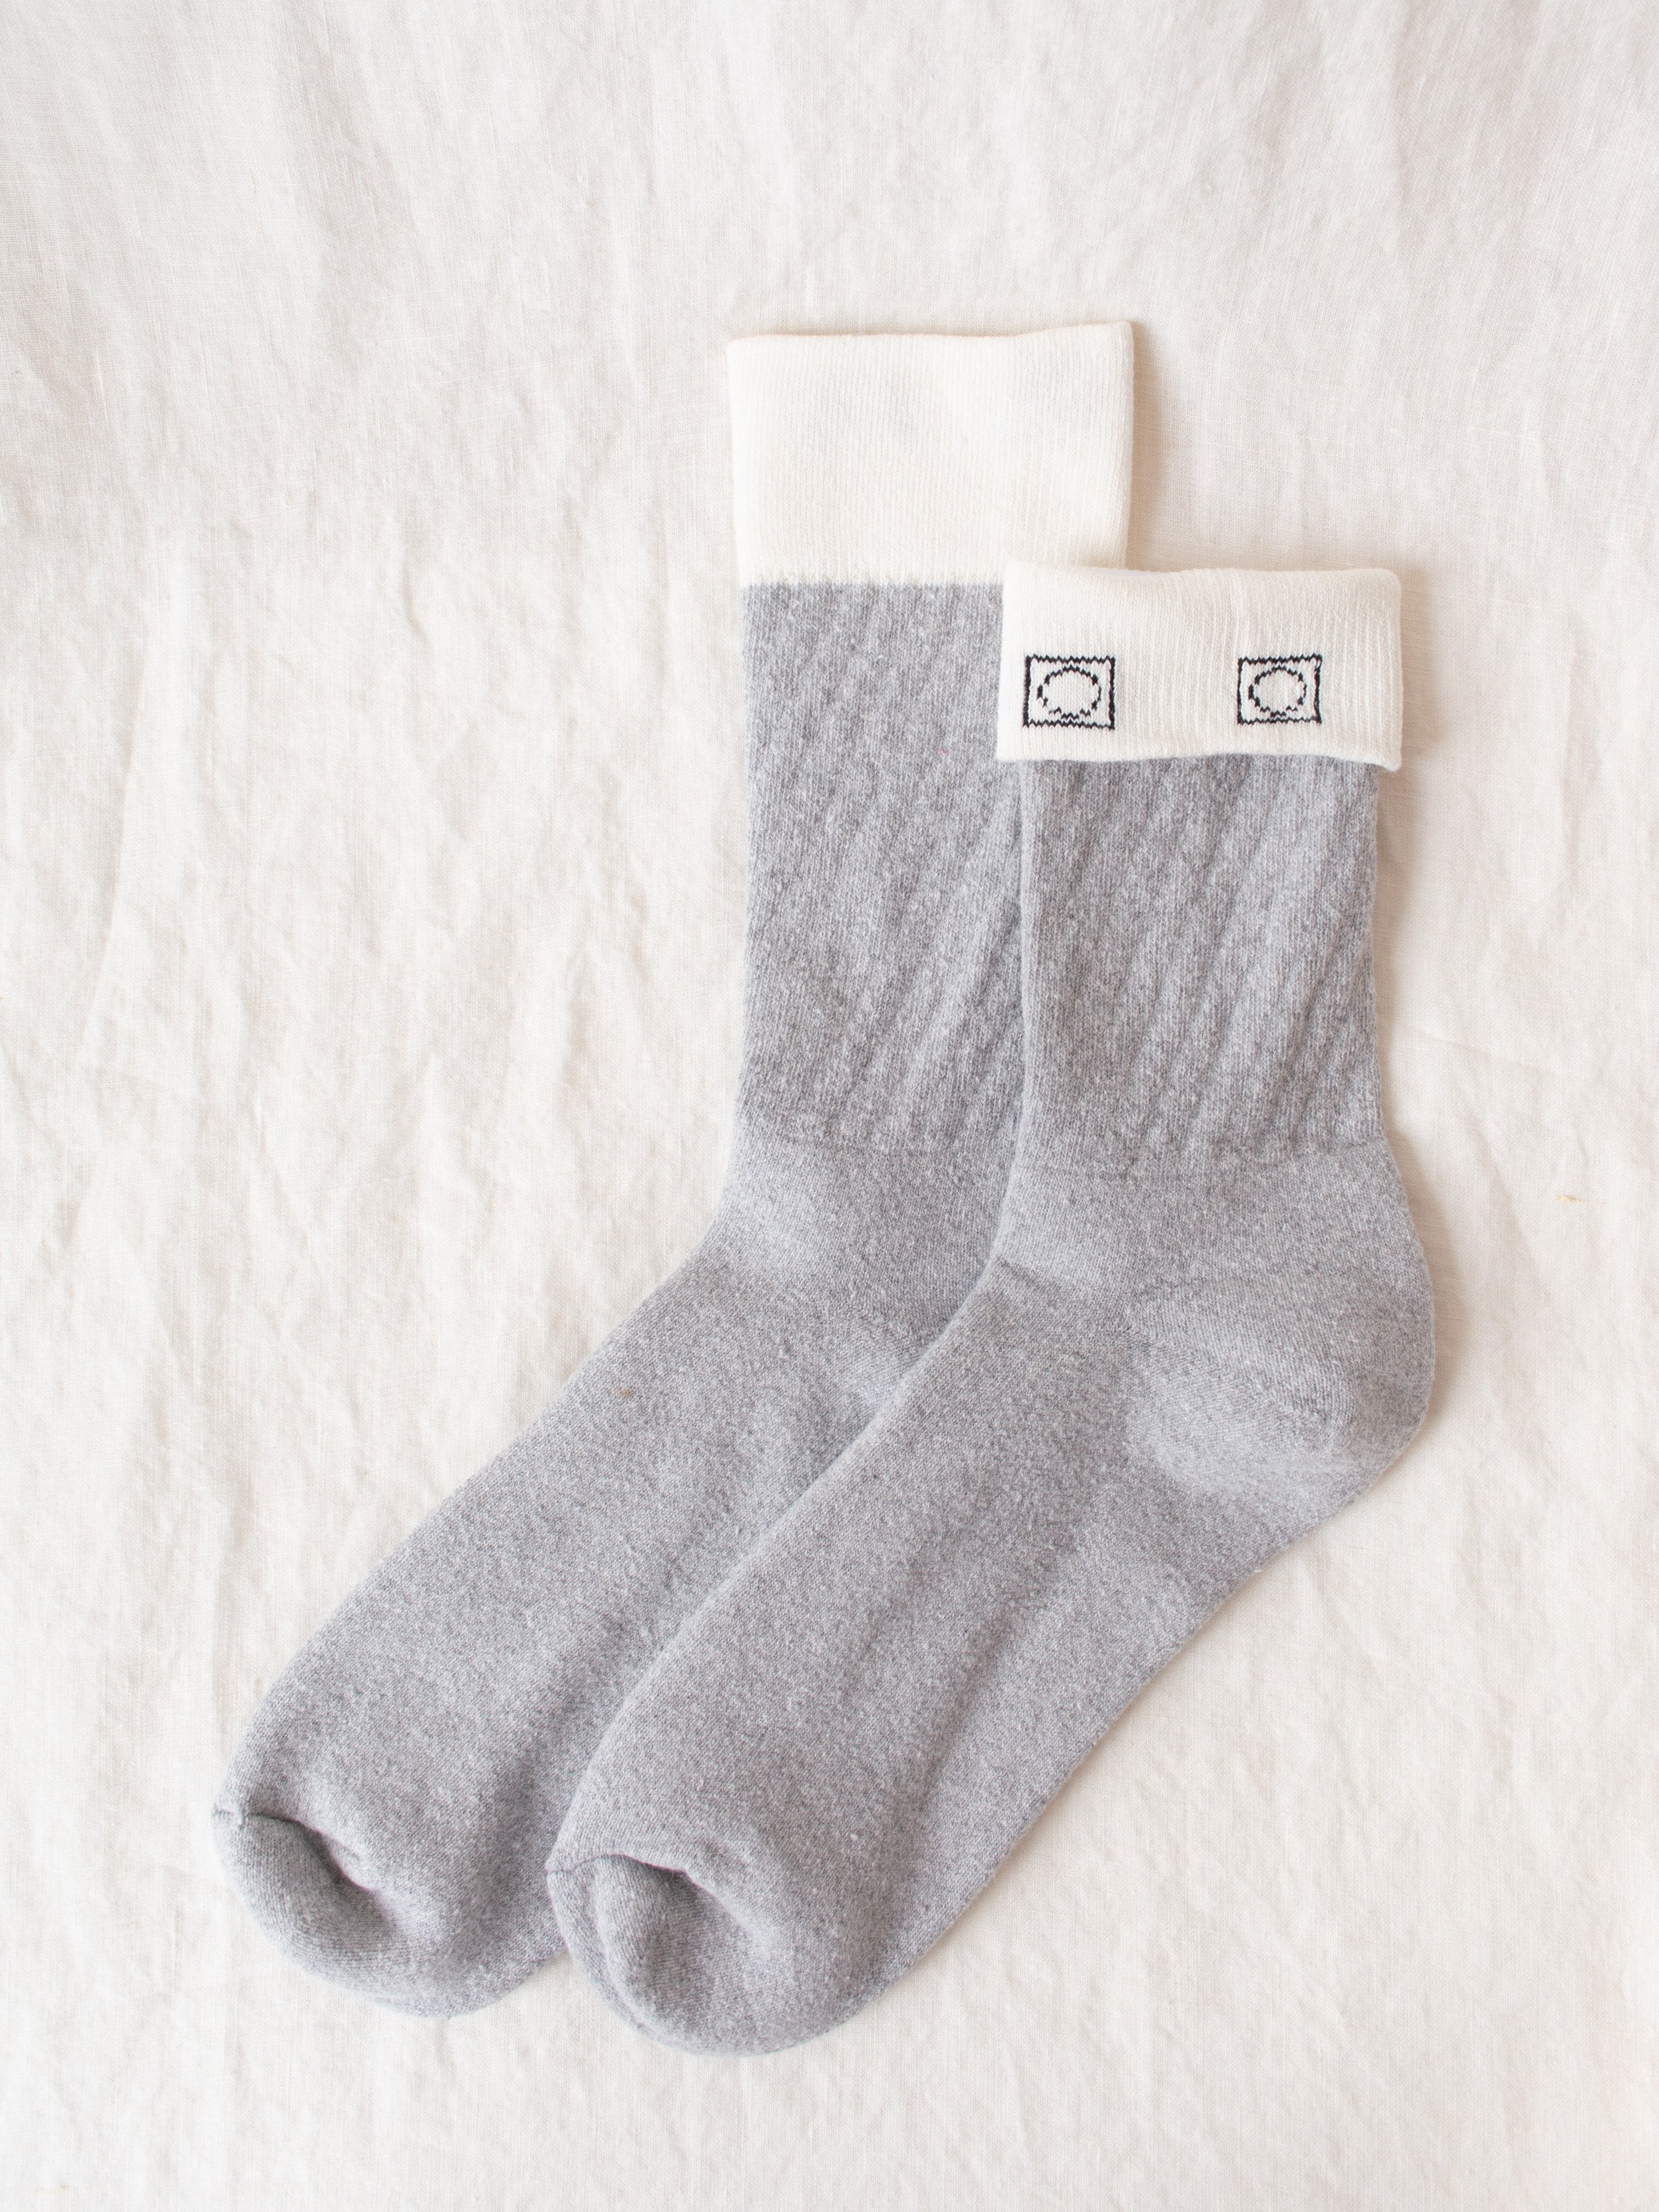 Namu Shop - paa Crew Sox 2.5 (3 Colors)